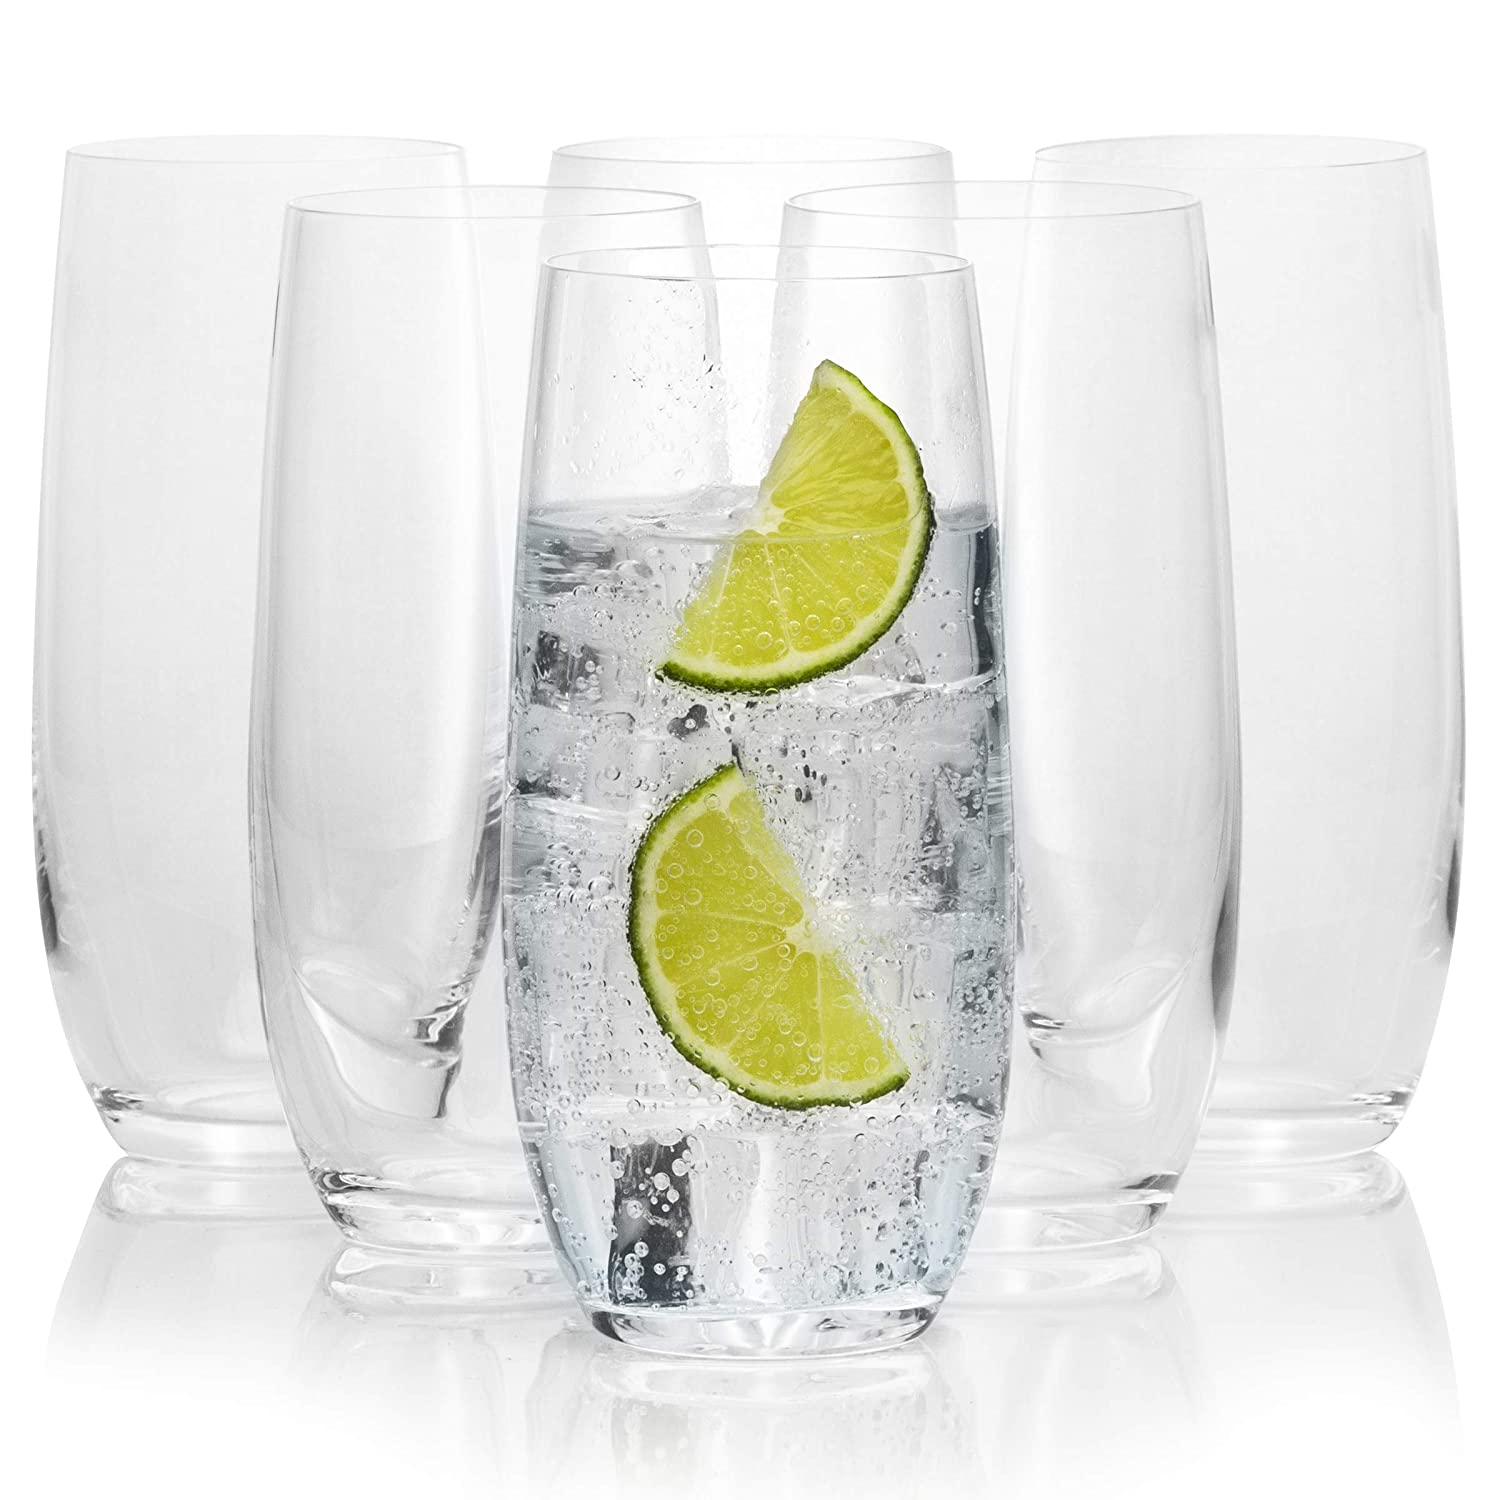 European Quality Luxury Standard 11.8 Ounces 350 Milliliters Bohemia Crystal Tall Highball Drinking Glasses Set of 6 Chip Resistant and Crystal Clear Glassware Tall